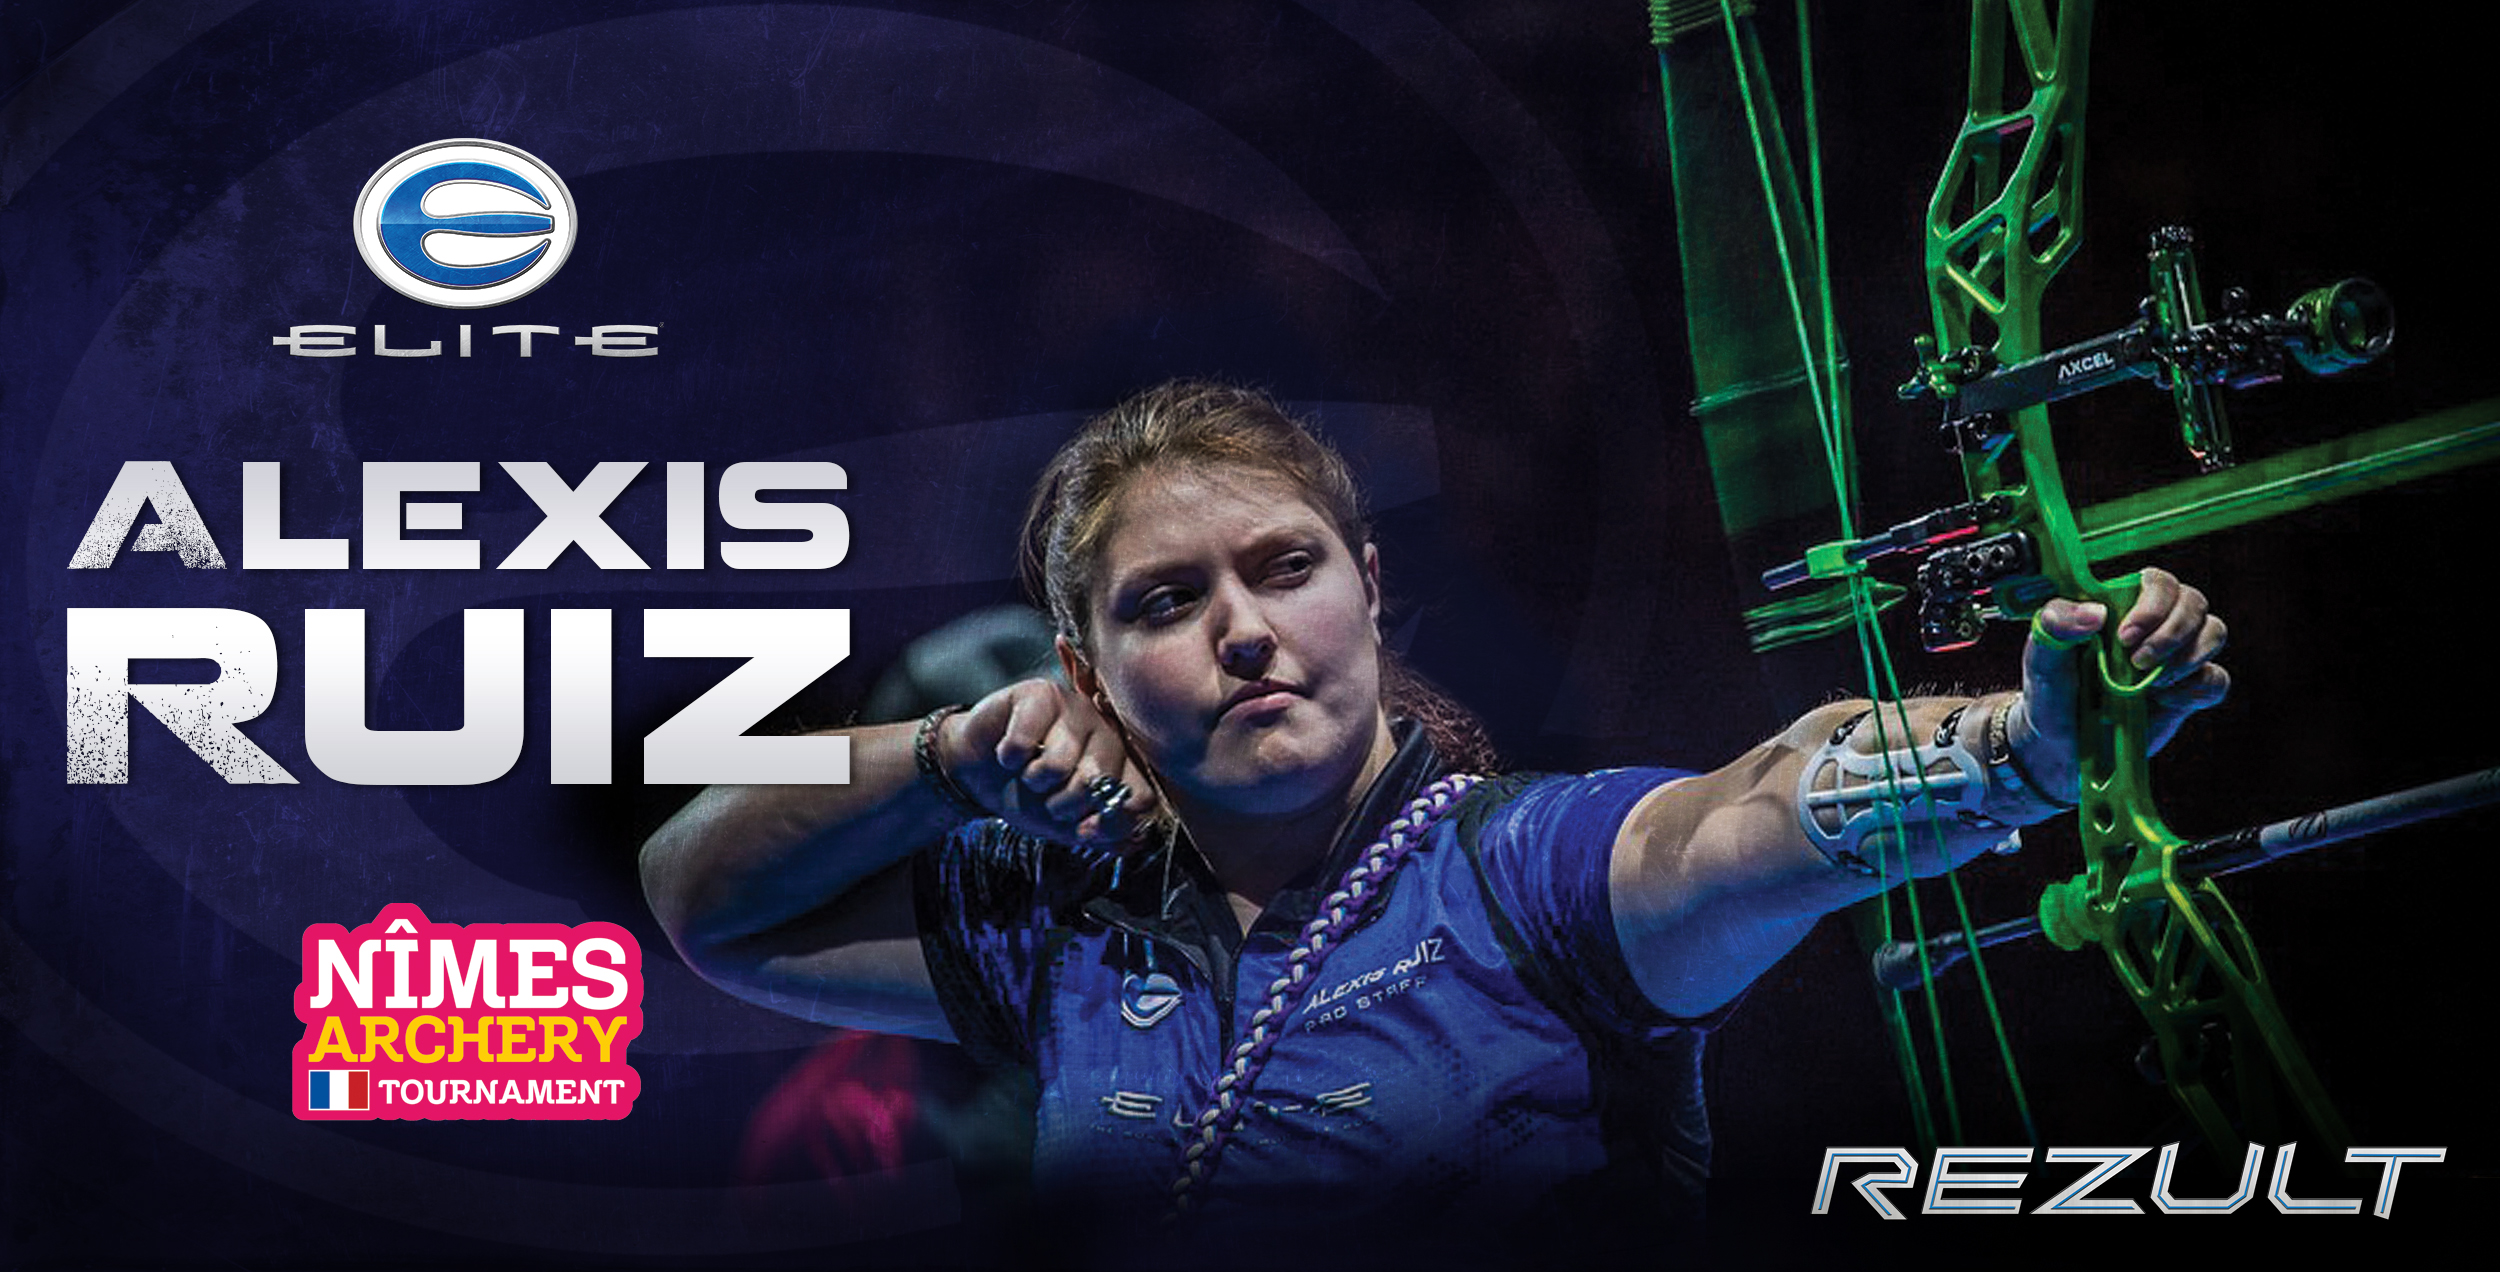 alexis ruiz elite archery rezult world archery tournament nimes france